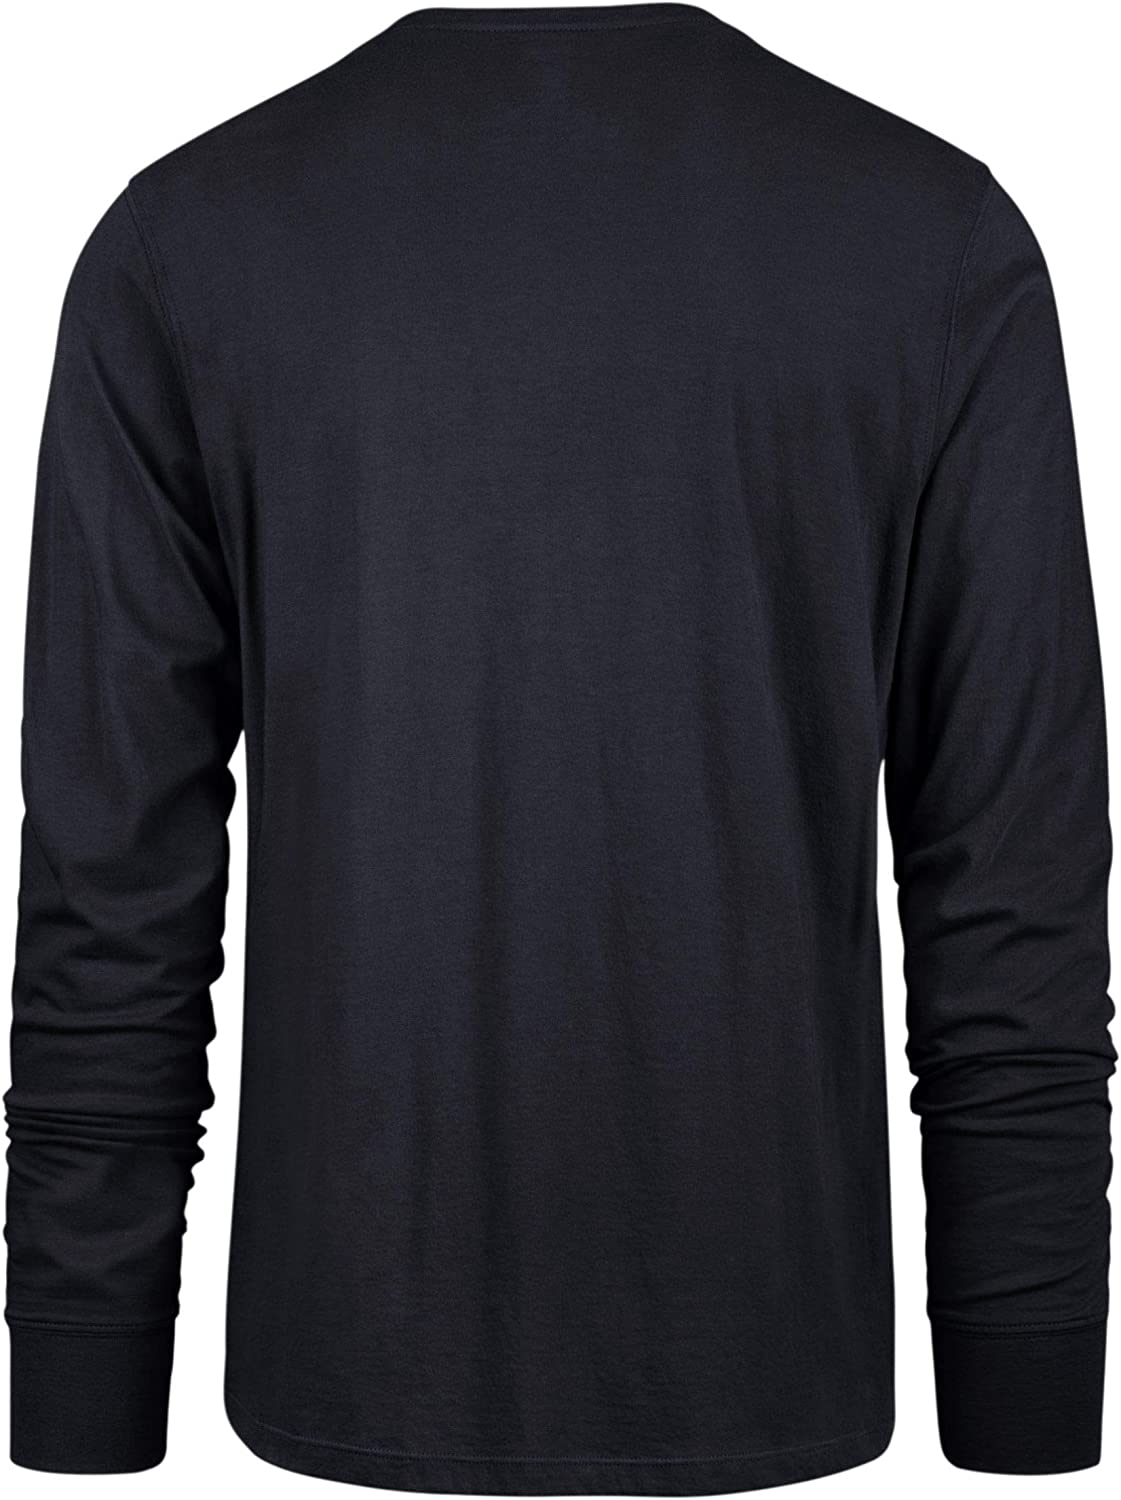 OTS World Cup Soccer Mens Rival Long Sleeve Tee